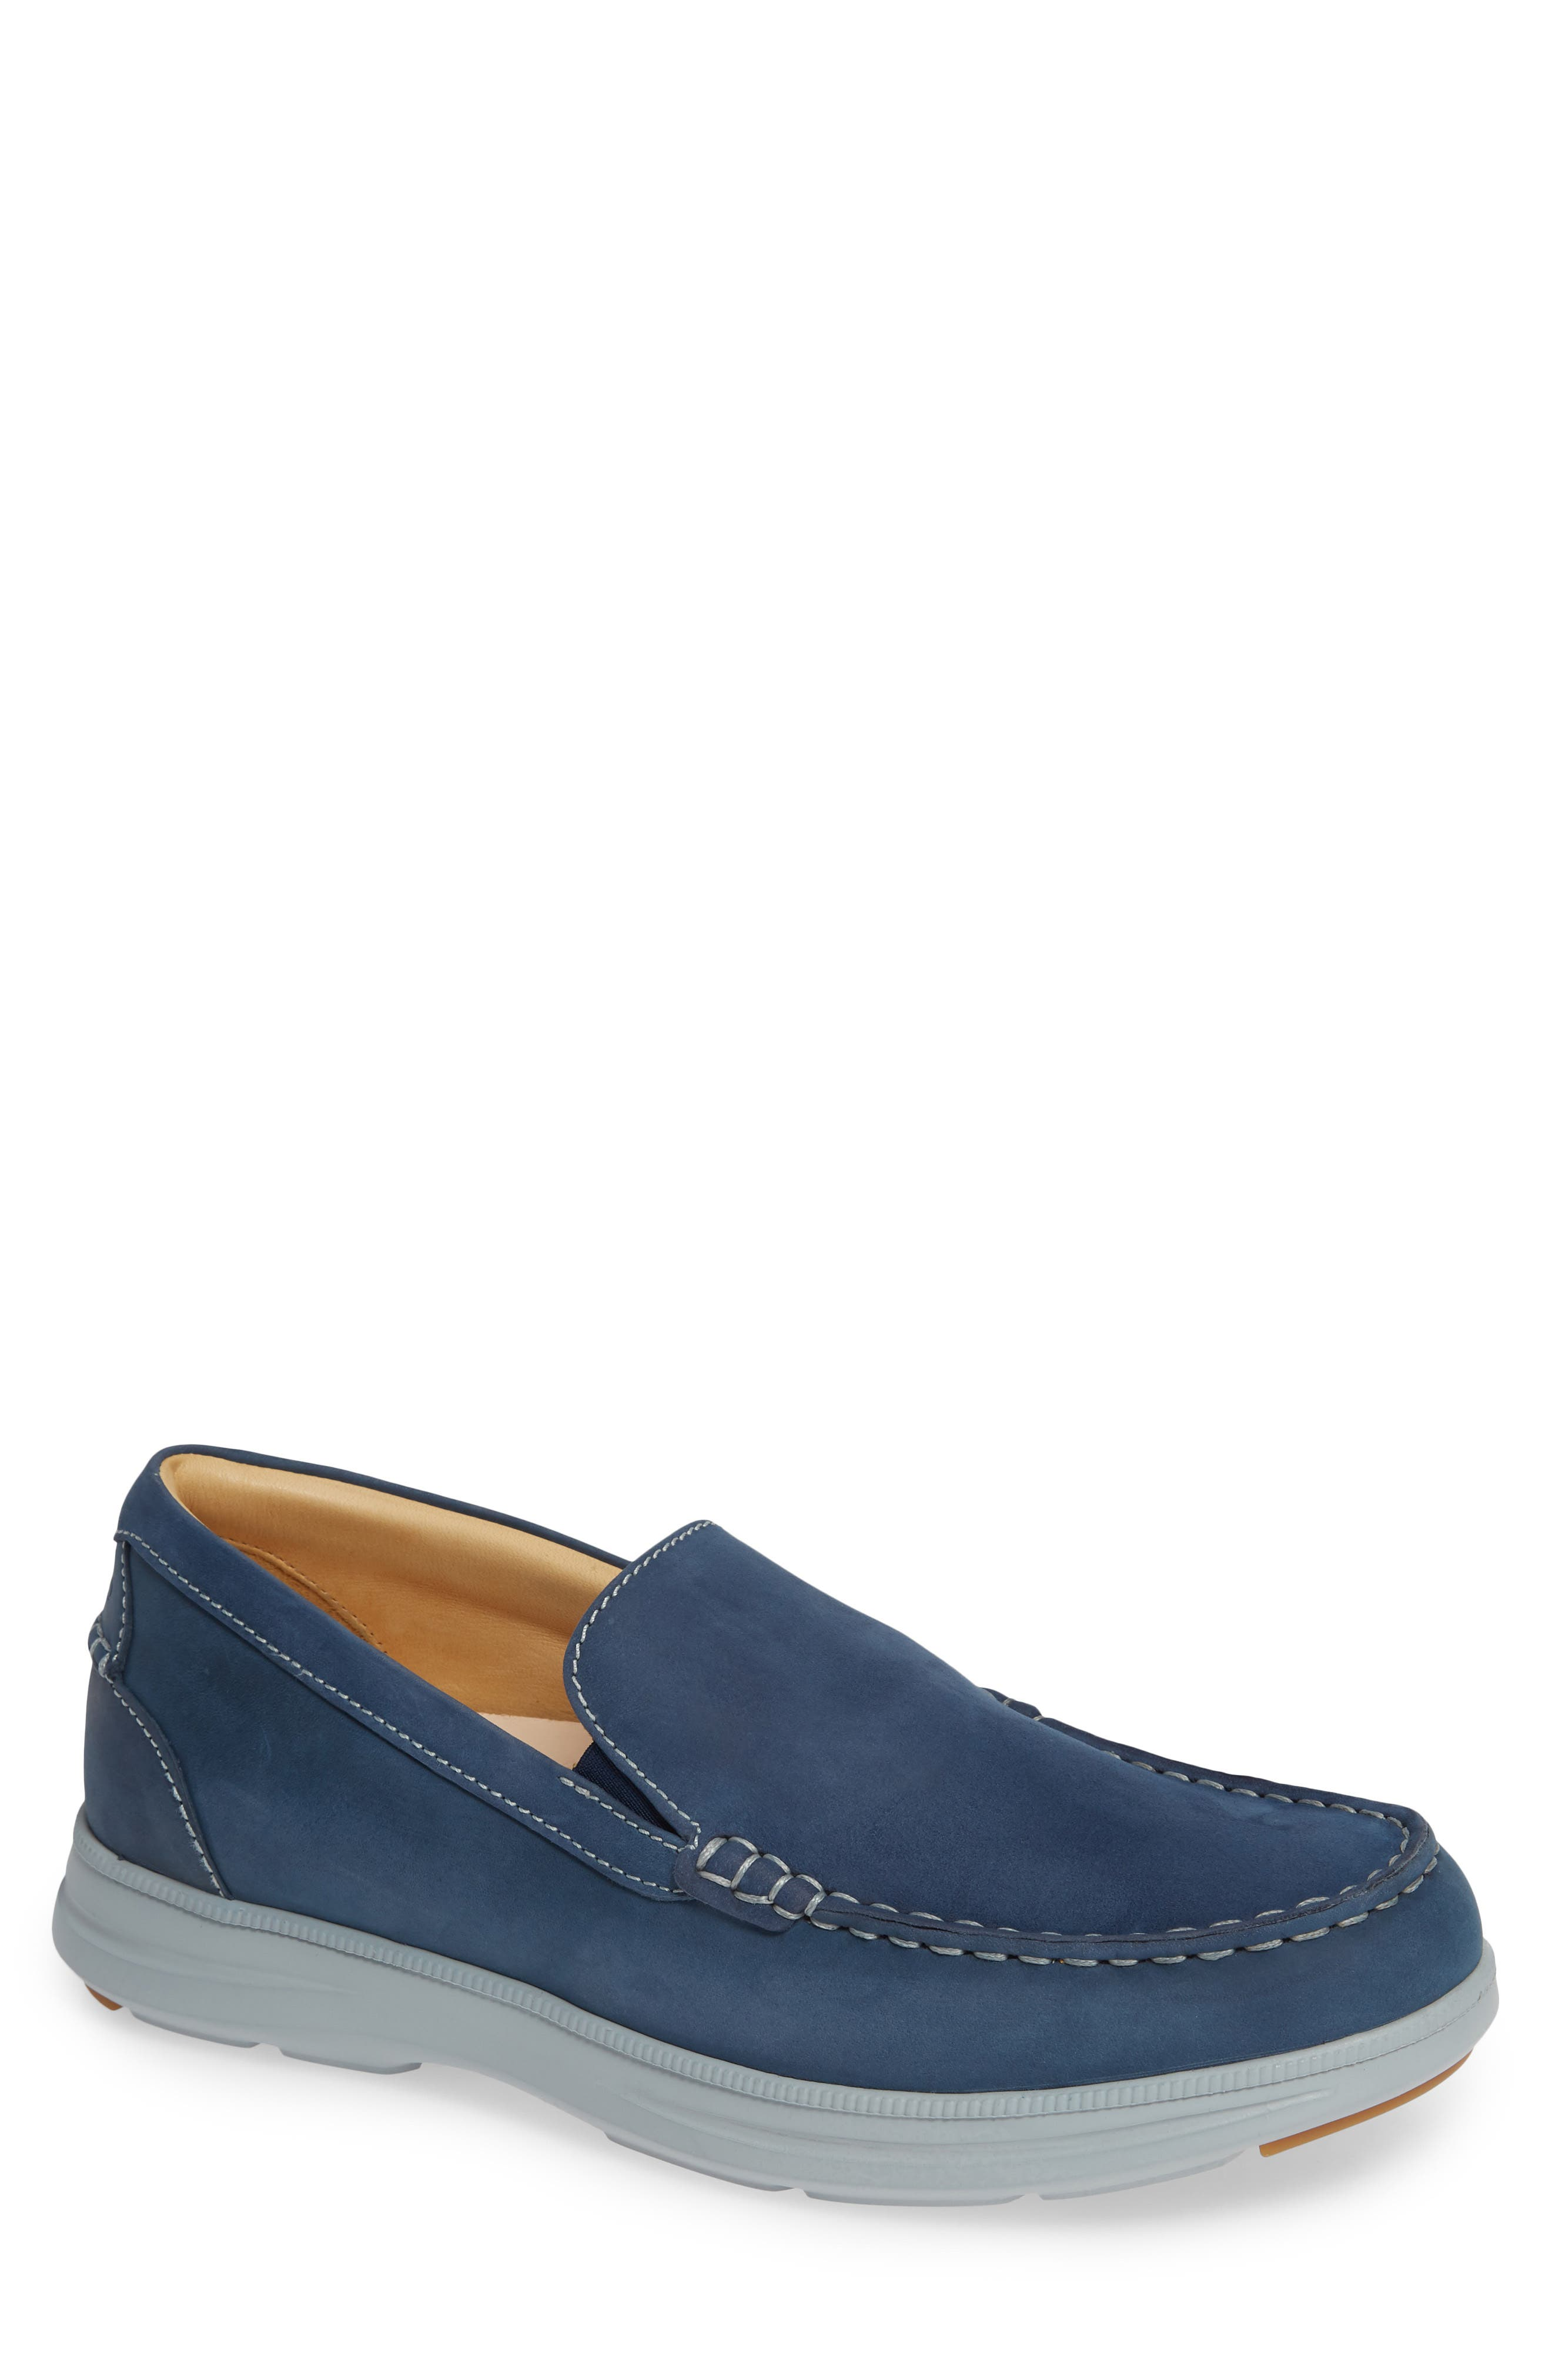 Brown Loafers Slip Ons Whats New For Men Nordstrom D Island Shoes Moccasine On Lacoste Suede Blue